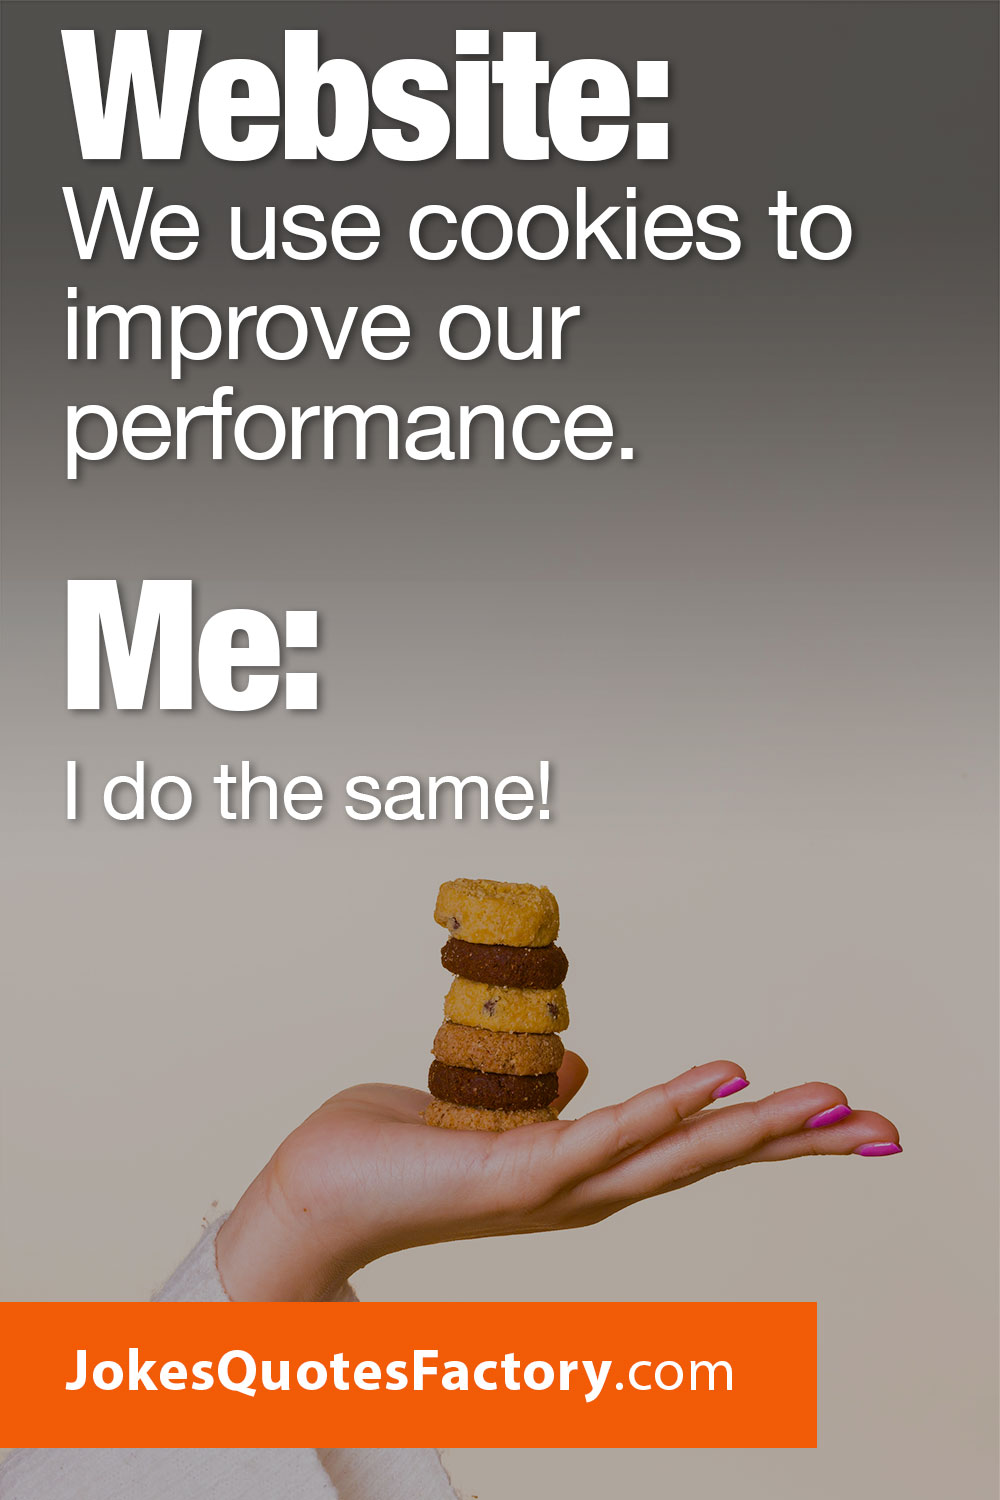 Website: We use cookies to improve our performance. Me: Me too!